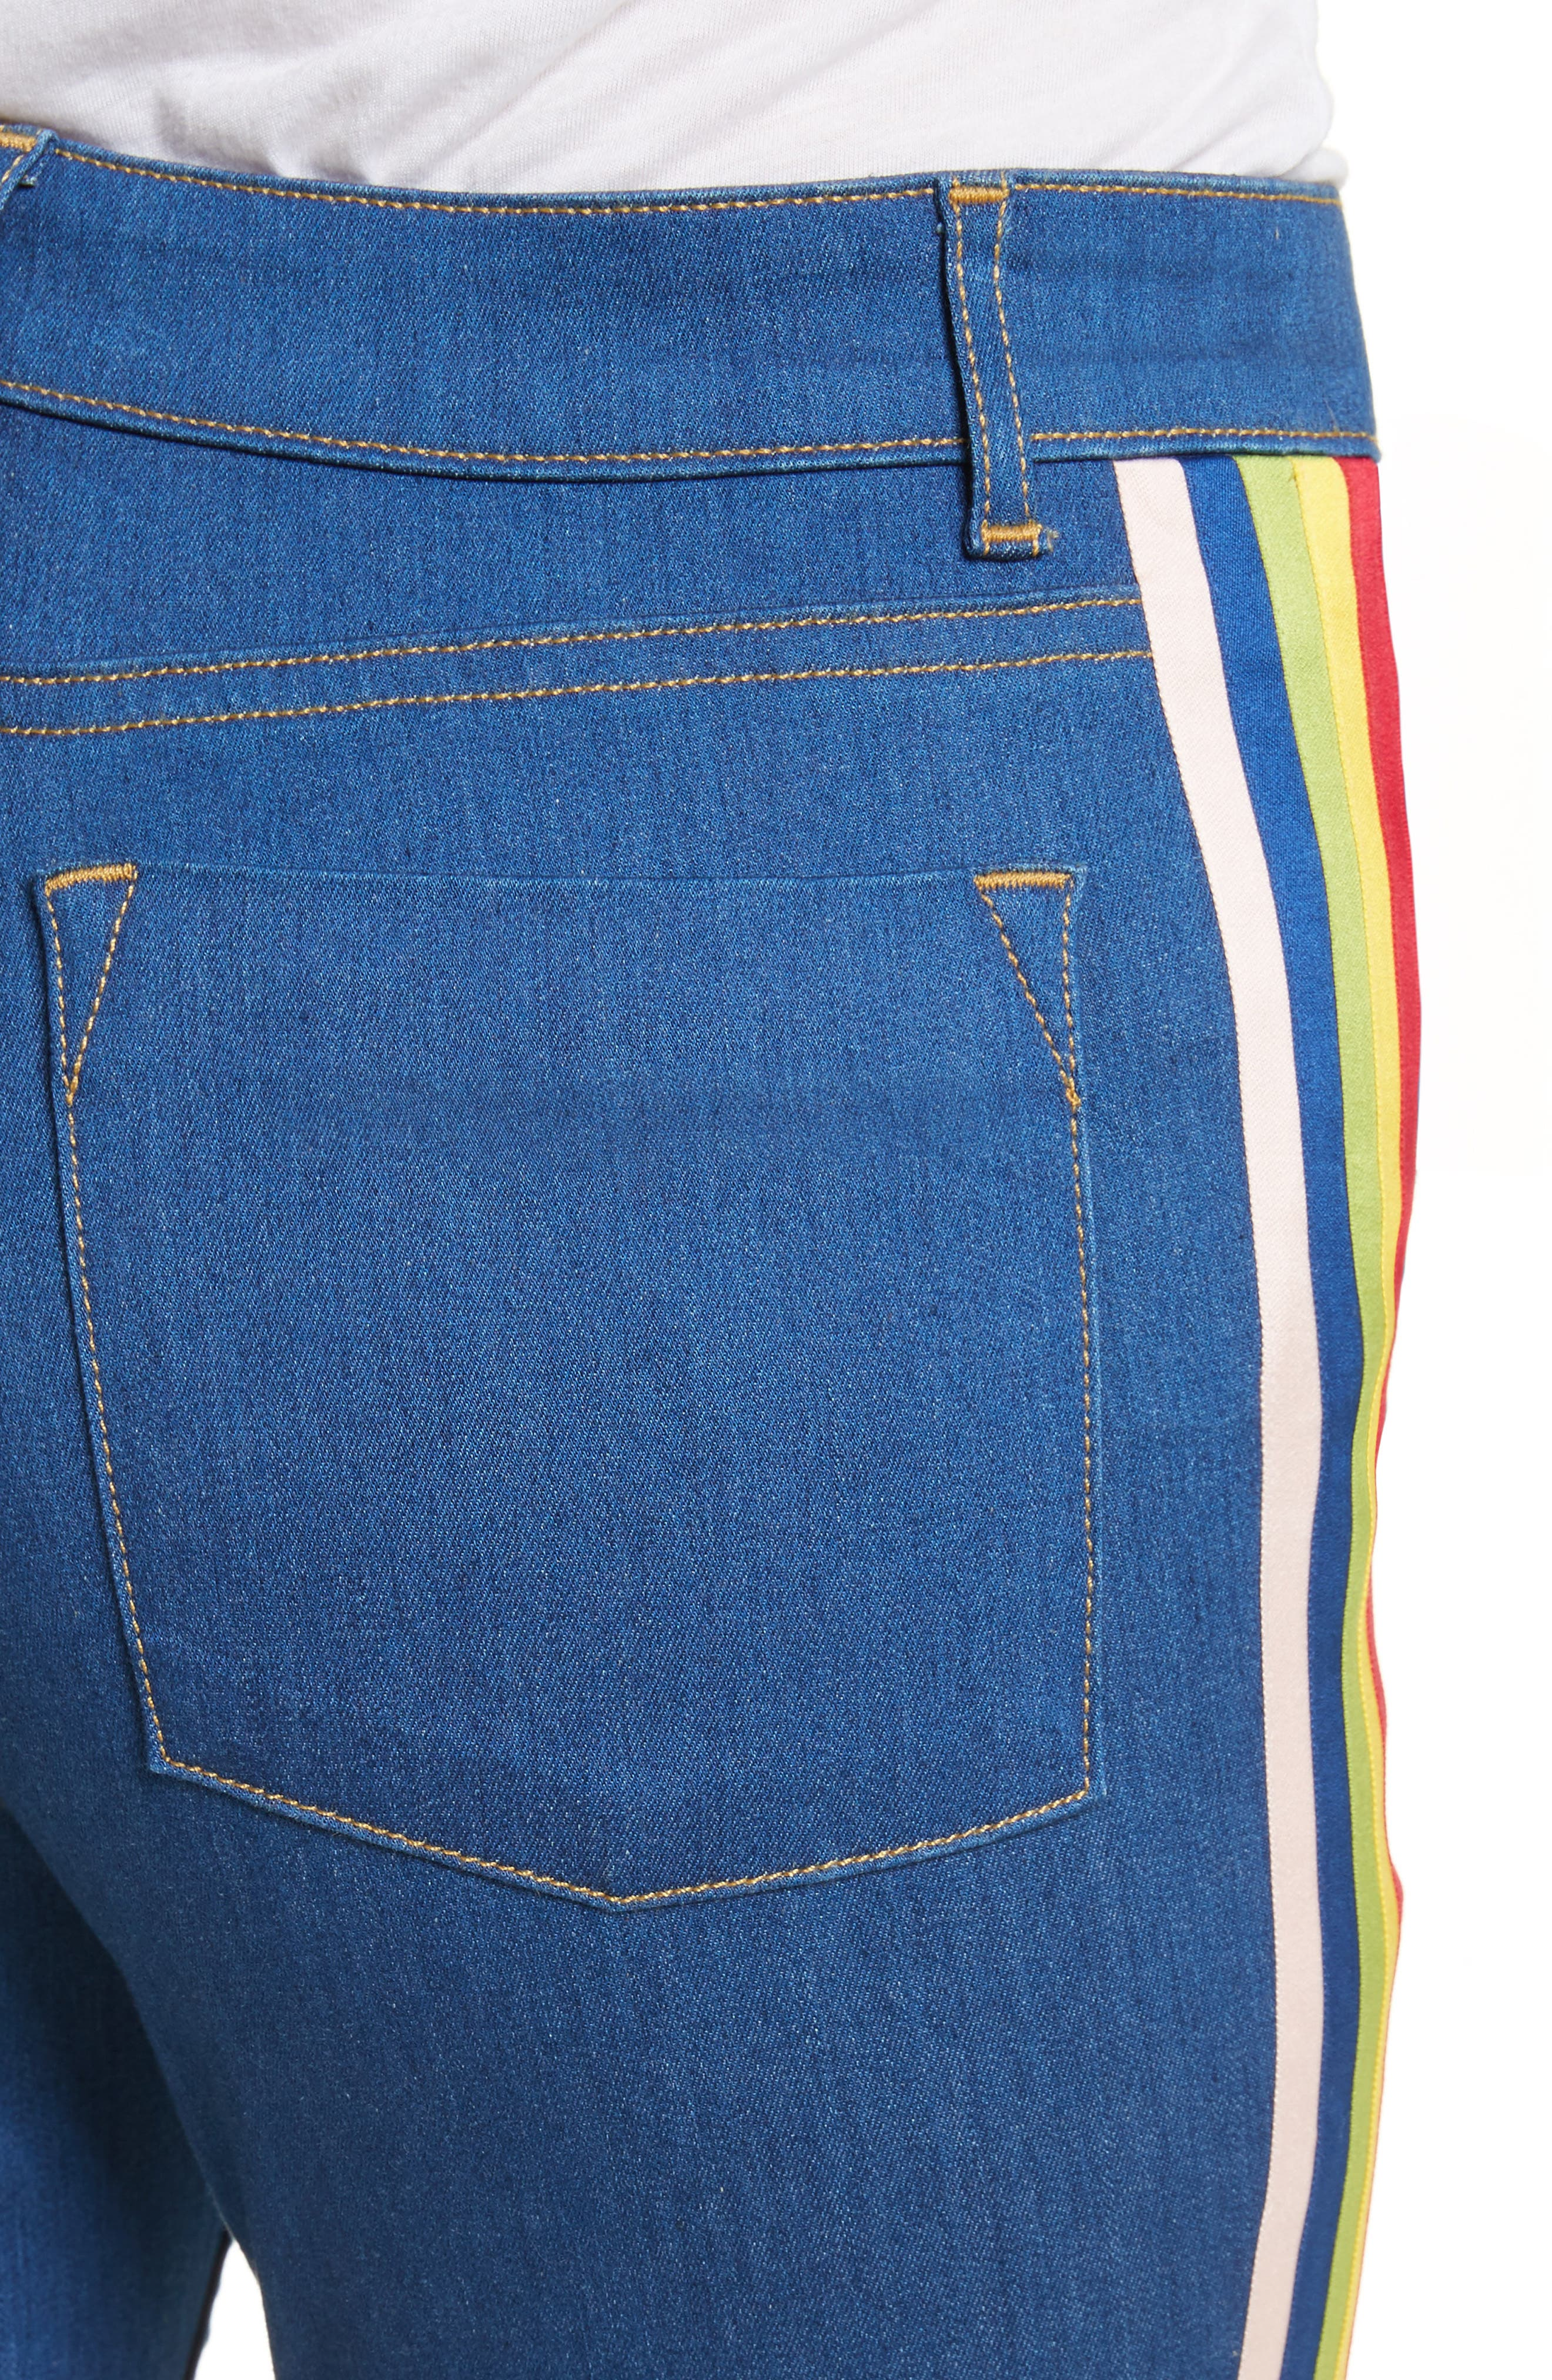 Kayleigh Bell Jeans,                             Alternate thumbnail 4, color,                             French Blue Multi